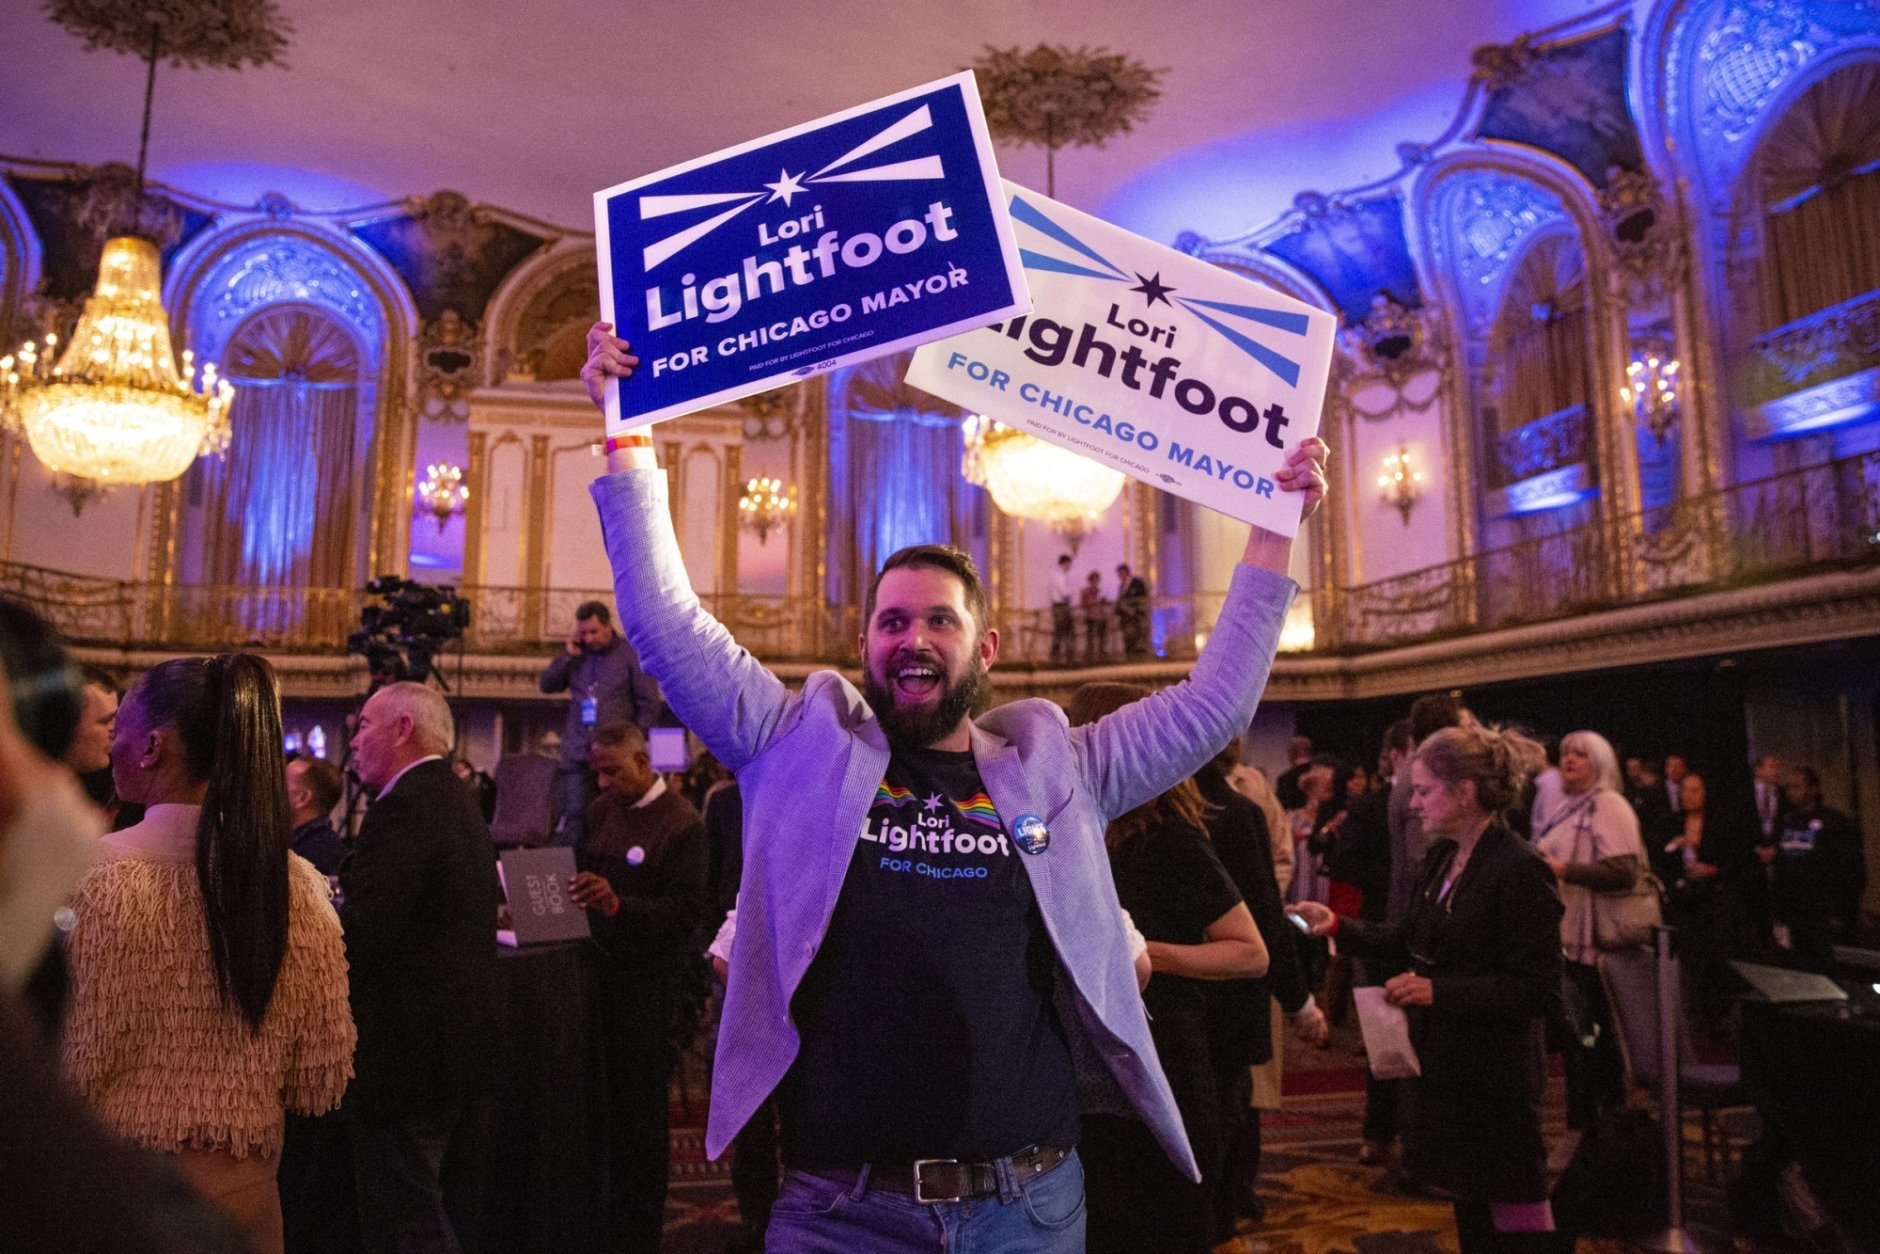 People gather at the Hilton Chicago for mayoral candidate Lori Lightfoot's election night rally, Tuesday, April 2, 2019. (Ashlee Rezin/Chicago Sun-Times via AP)